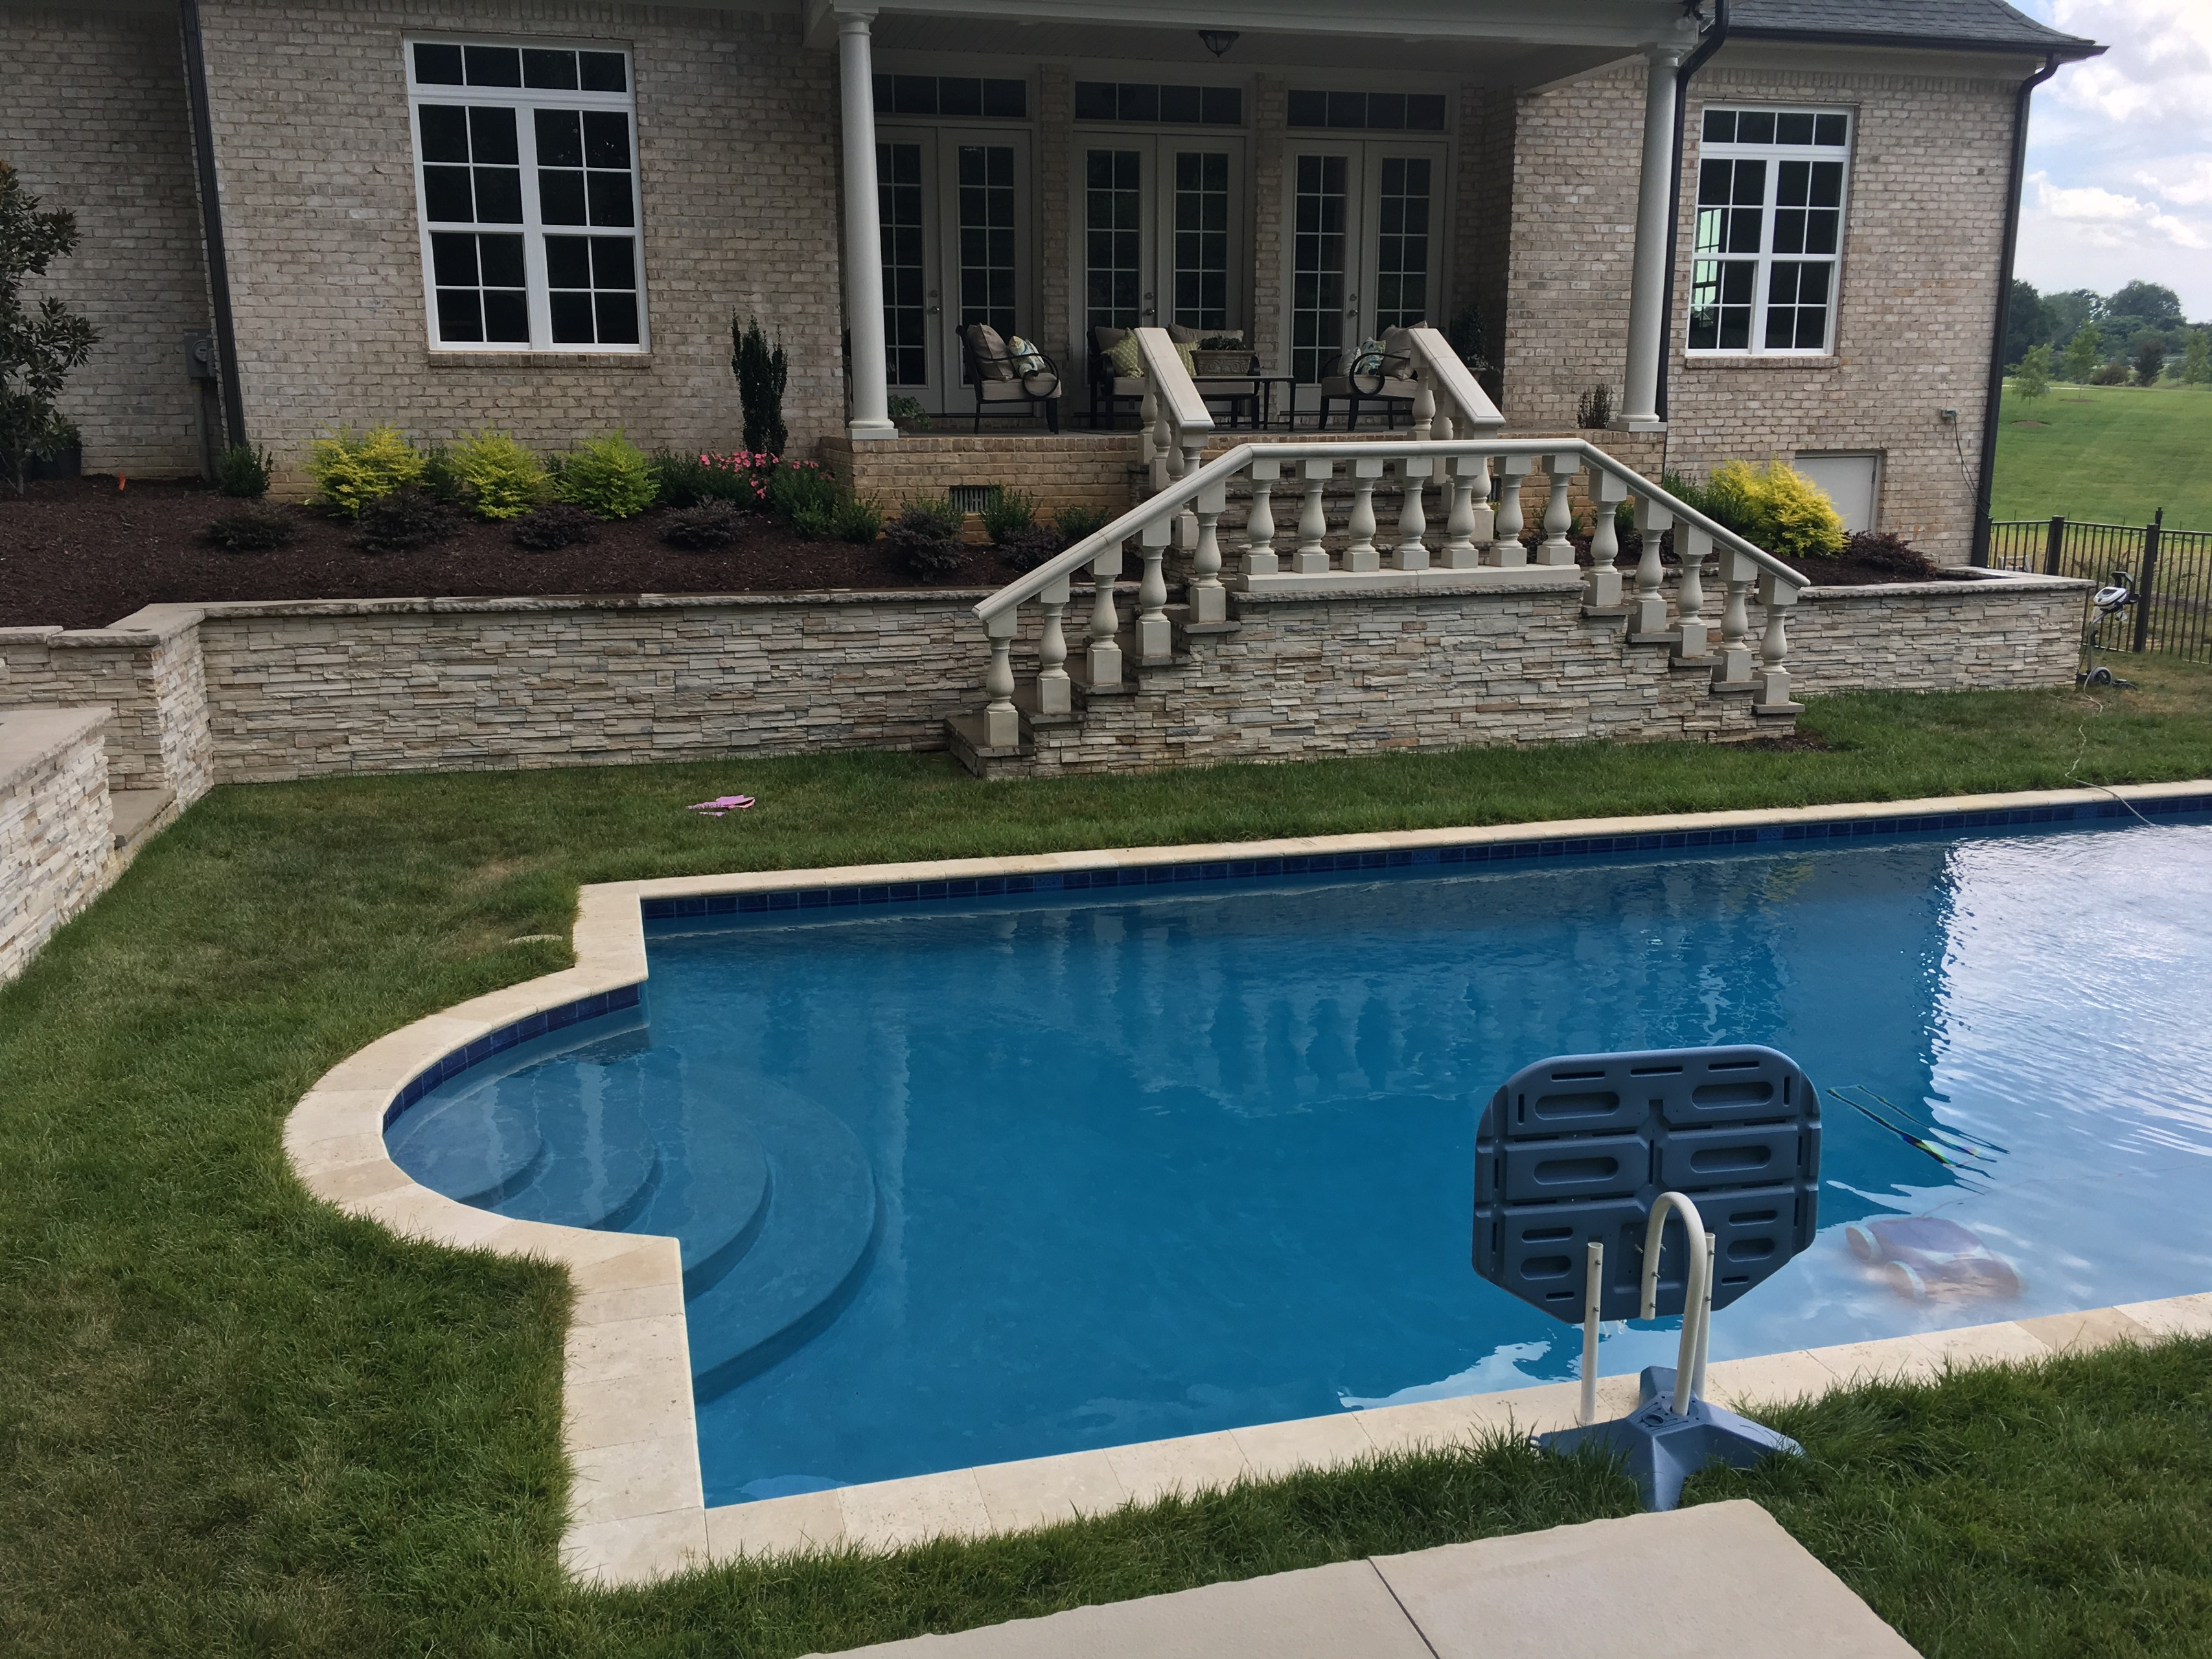 AFTER SOD & SEED PUT DOWN: Pool with firepit, english garden, large patio areas